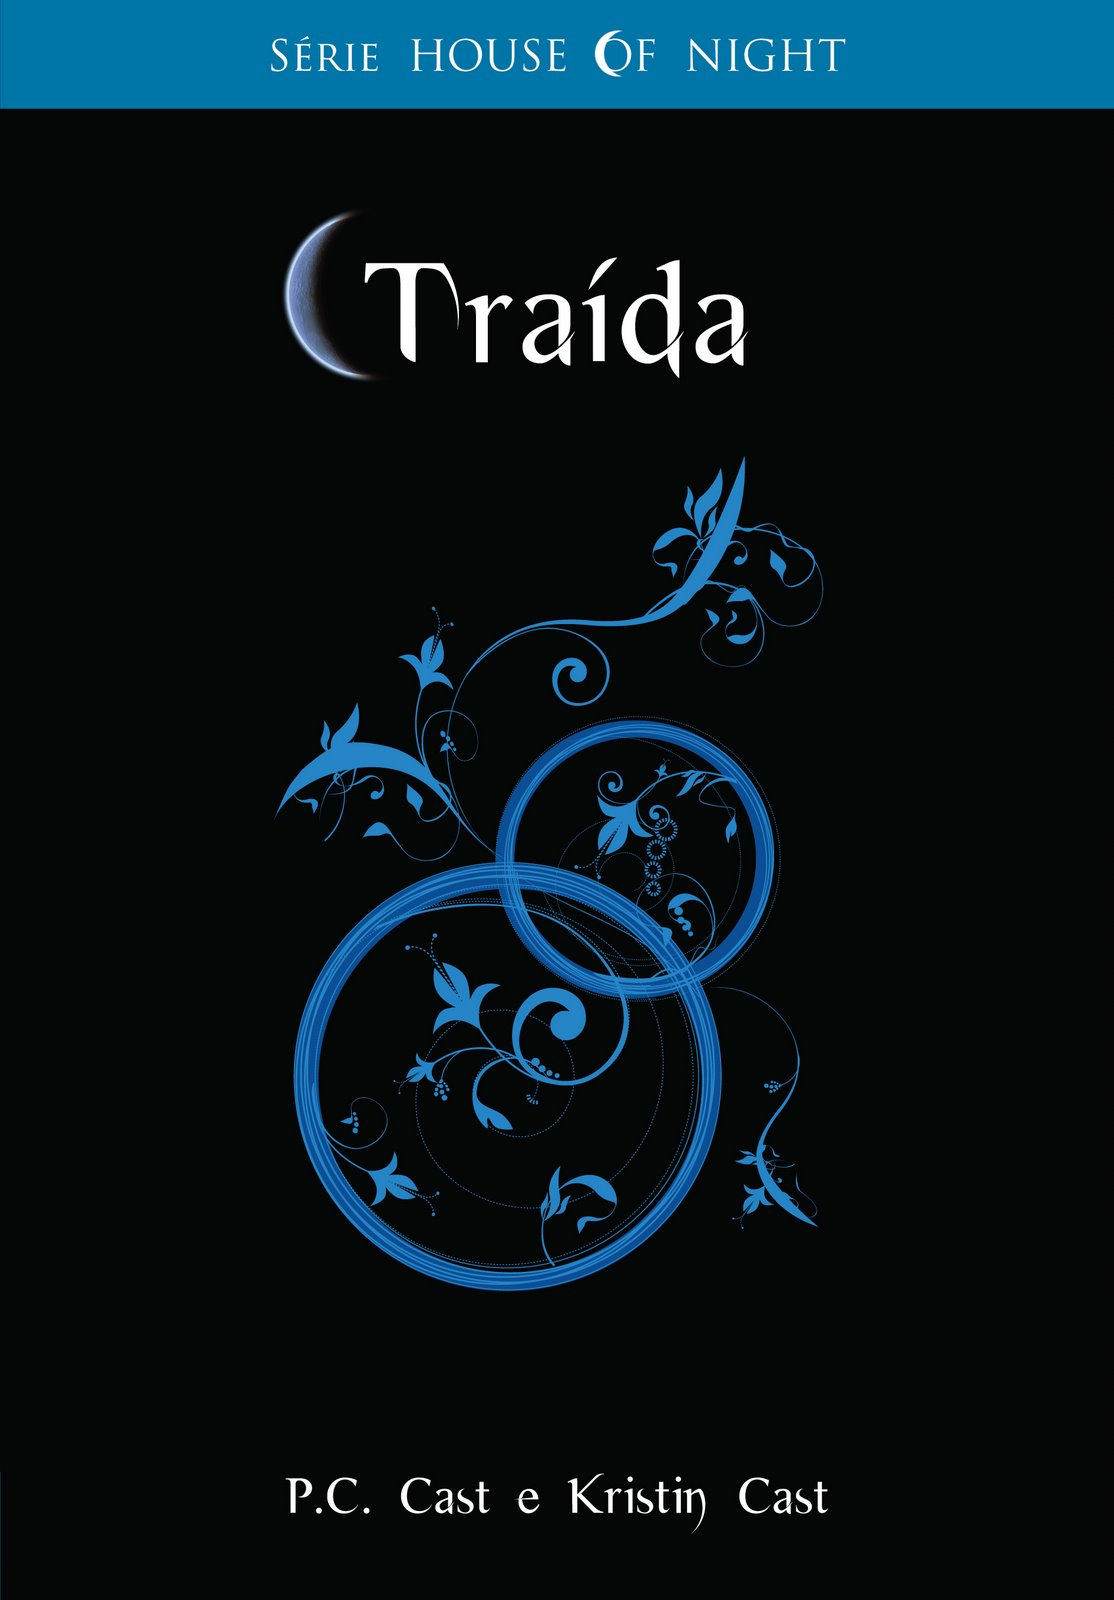 Trada Srie House of Night